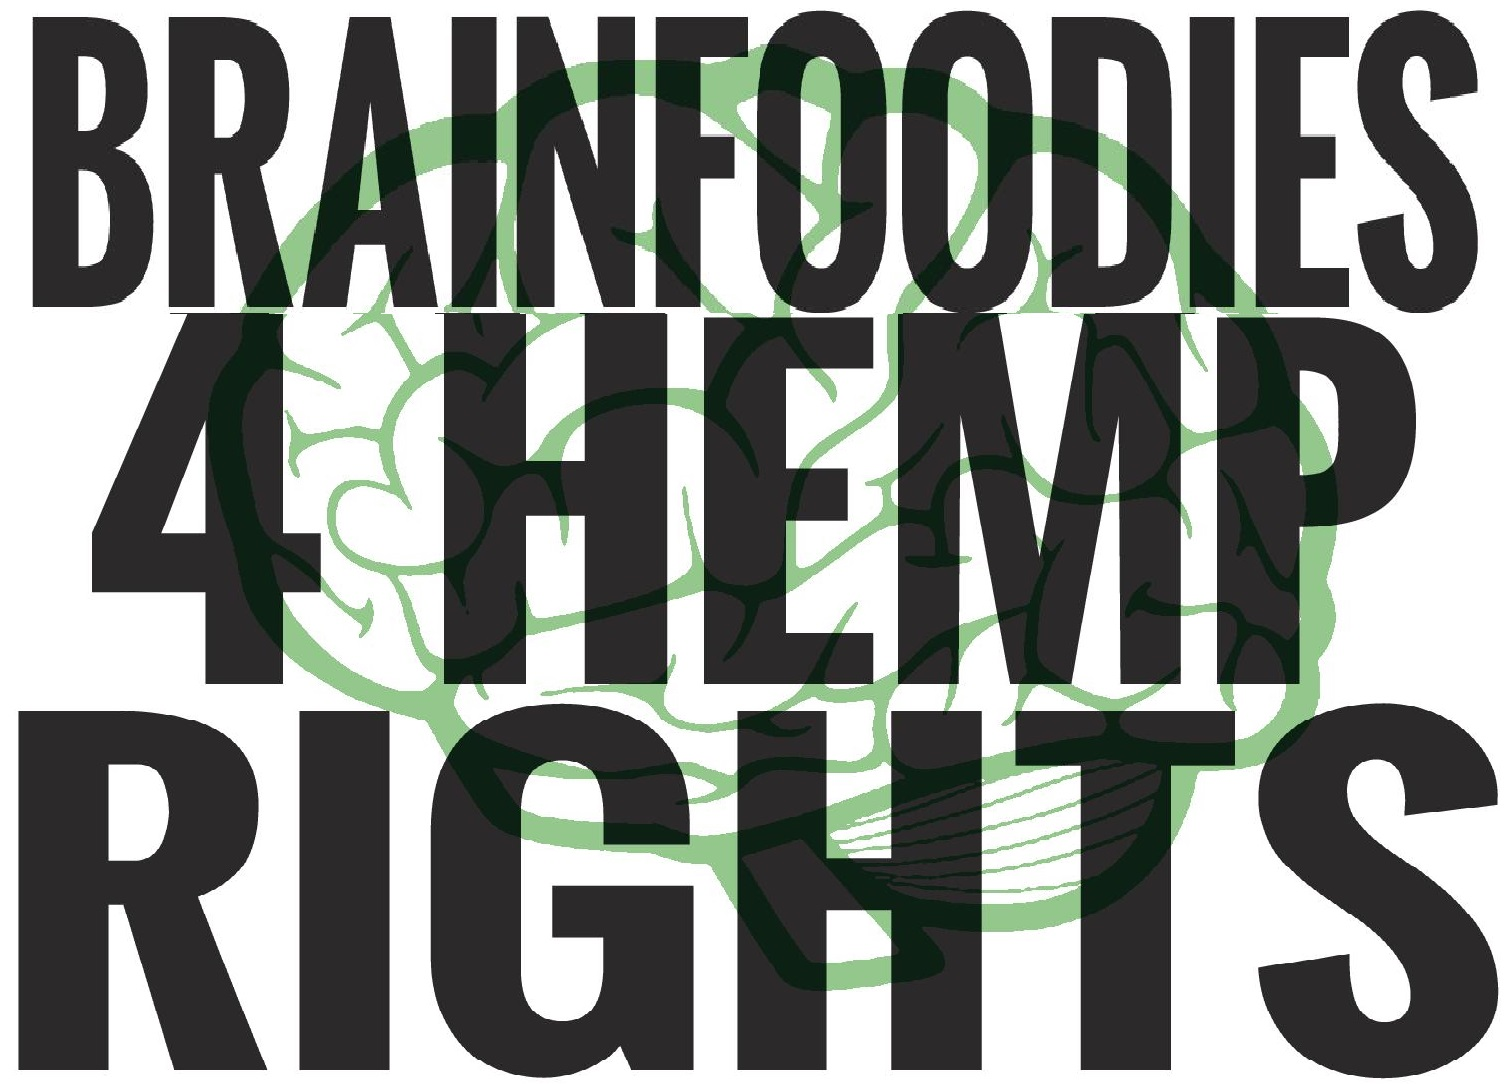 Brainfoodies for hemp Rights!